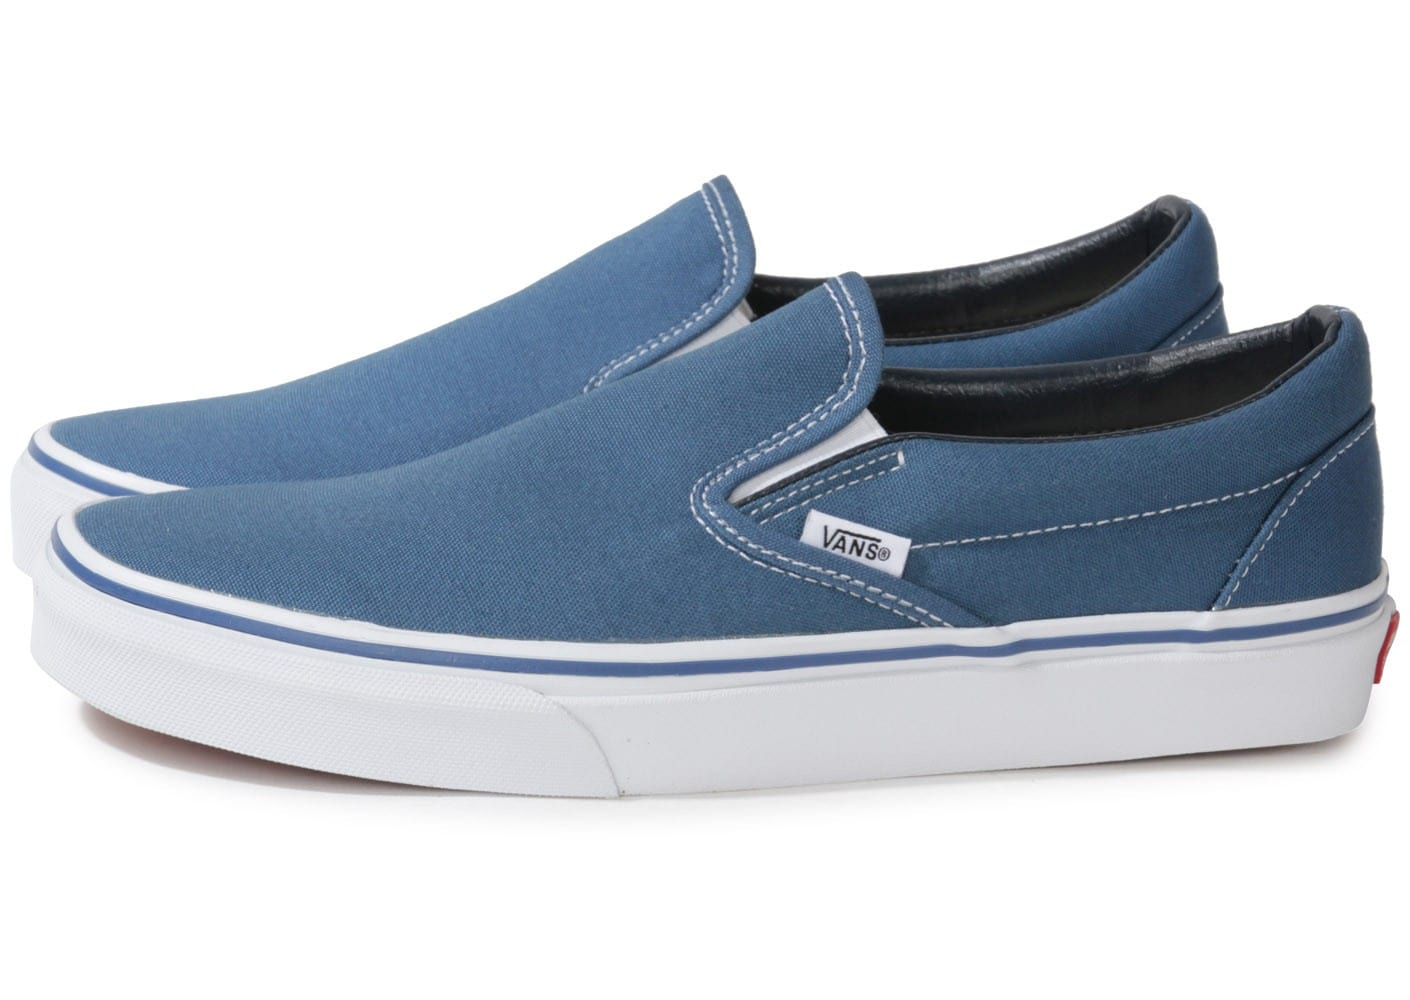 vans classic slip on bleu chaussures homme chausport. Black Bedroom Furniture Sets. Home Design Ideas